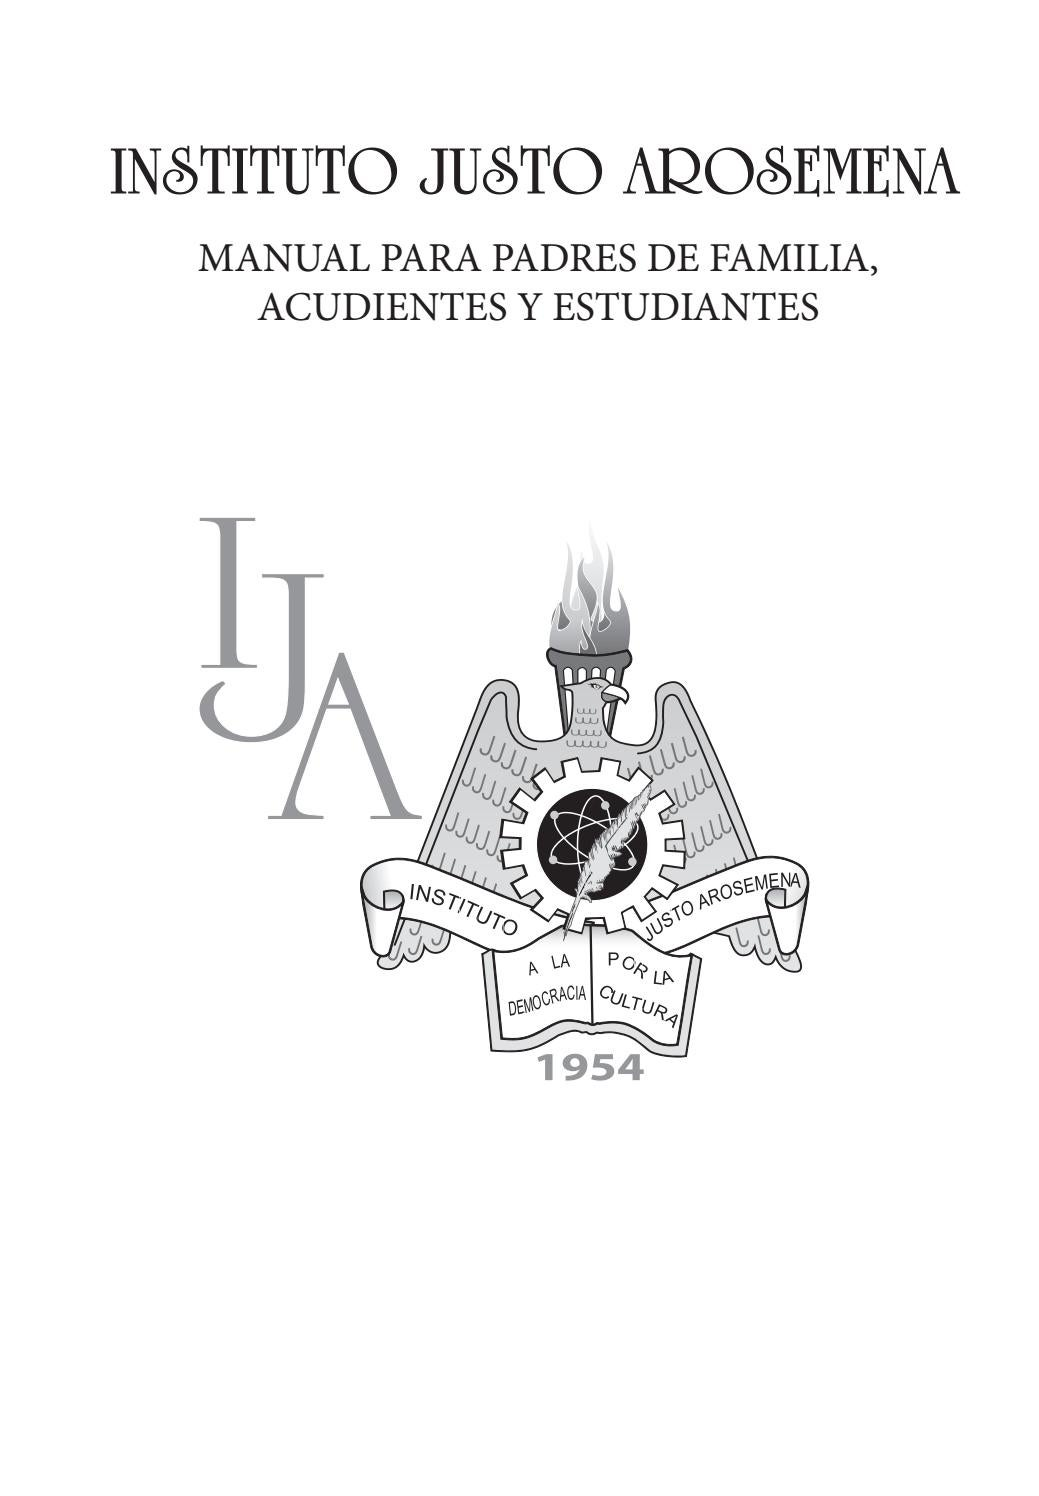 MANUAL PARA PADRES DE FAMILIA, ACUDIENTES Y ESTUDIANTES by